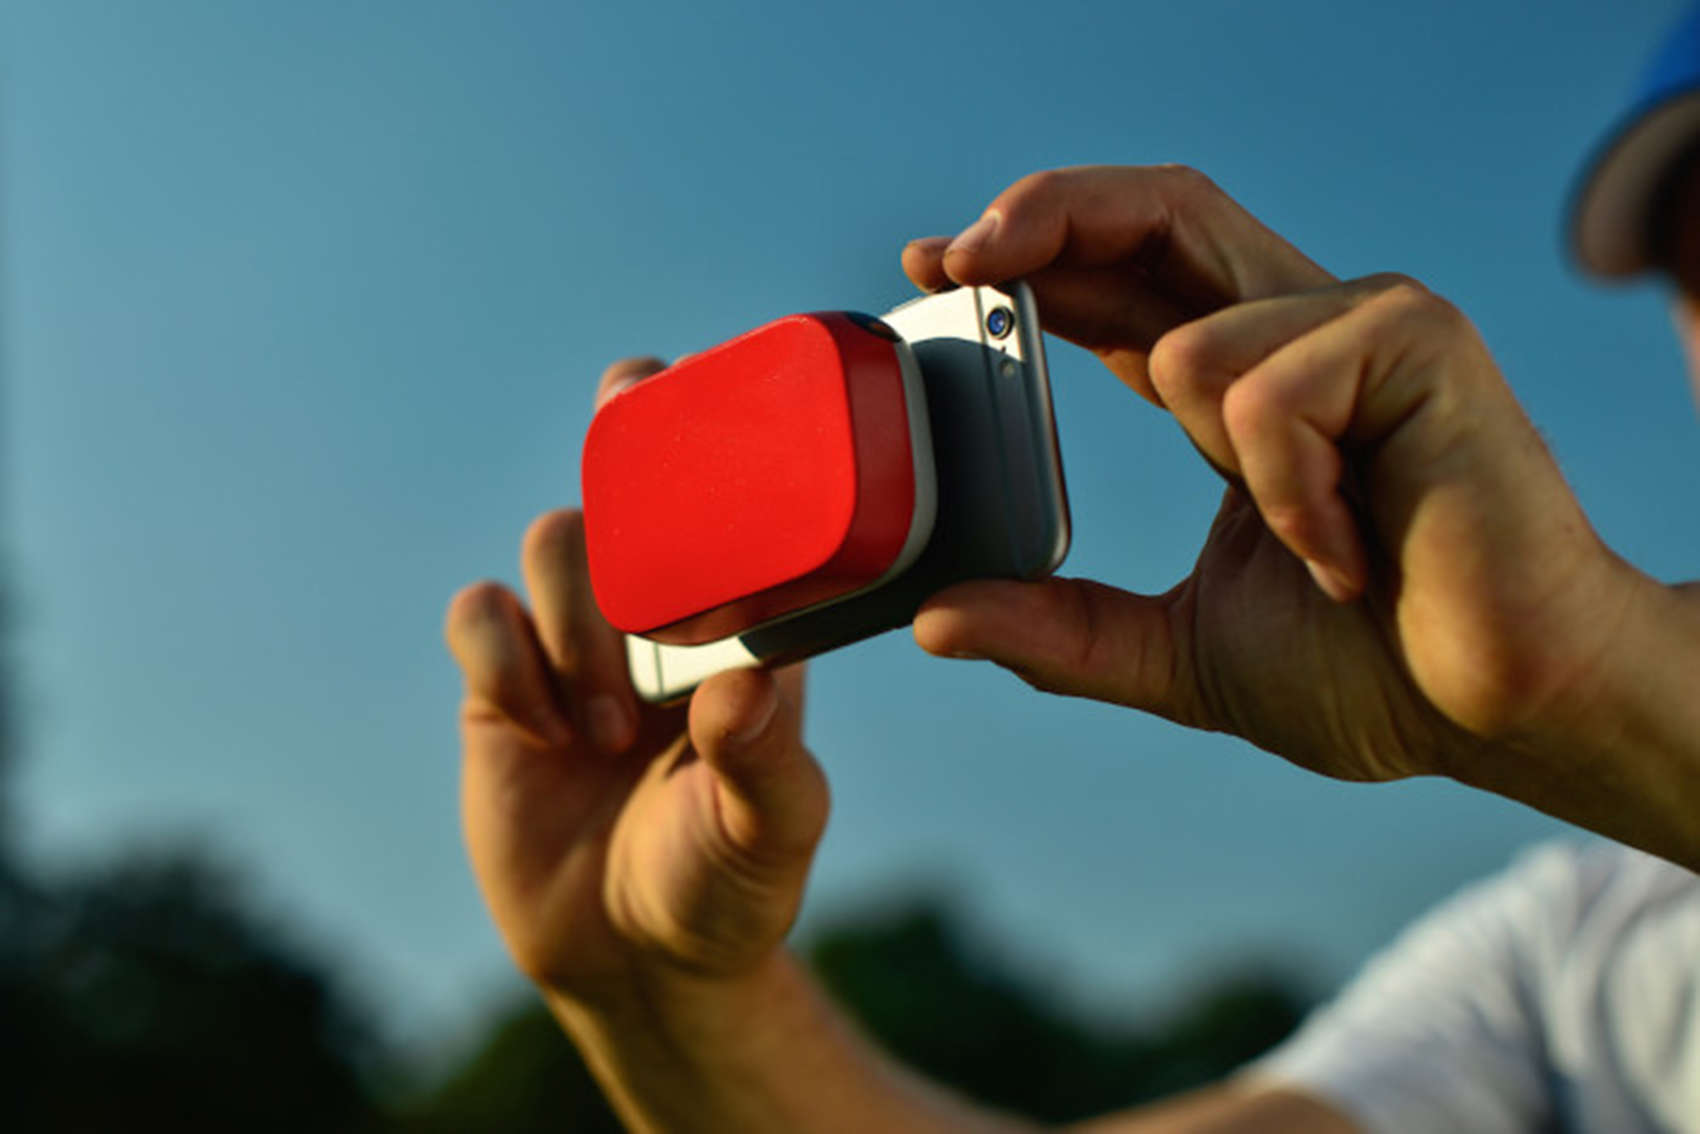 The Scoutee can attach to an iPhone and record pitch speeds and other data it sends to an app.